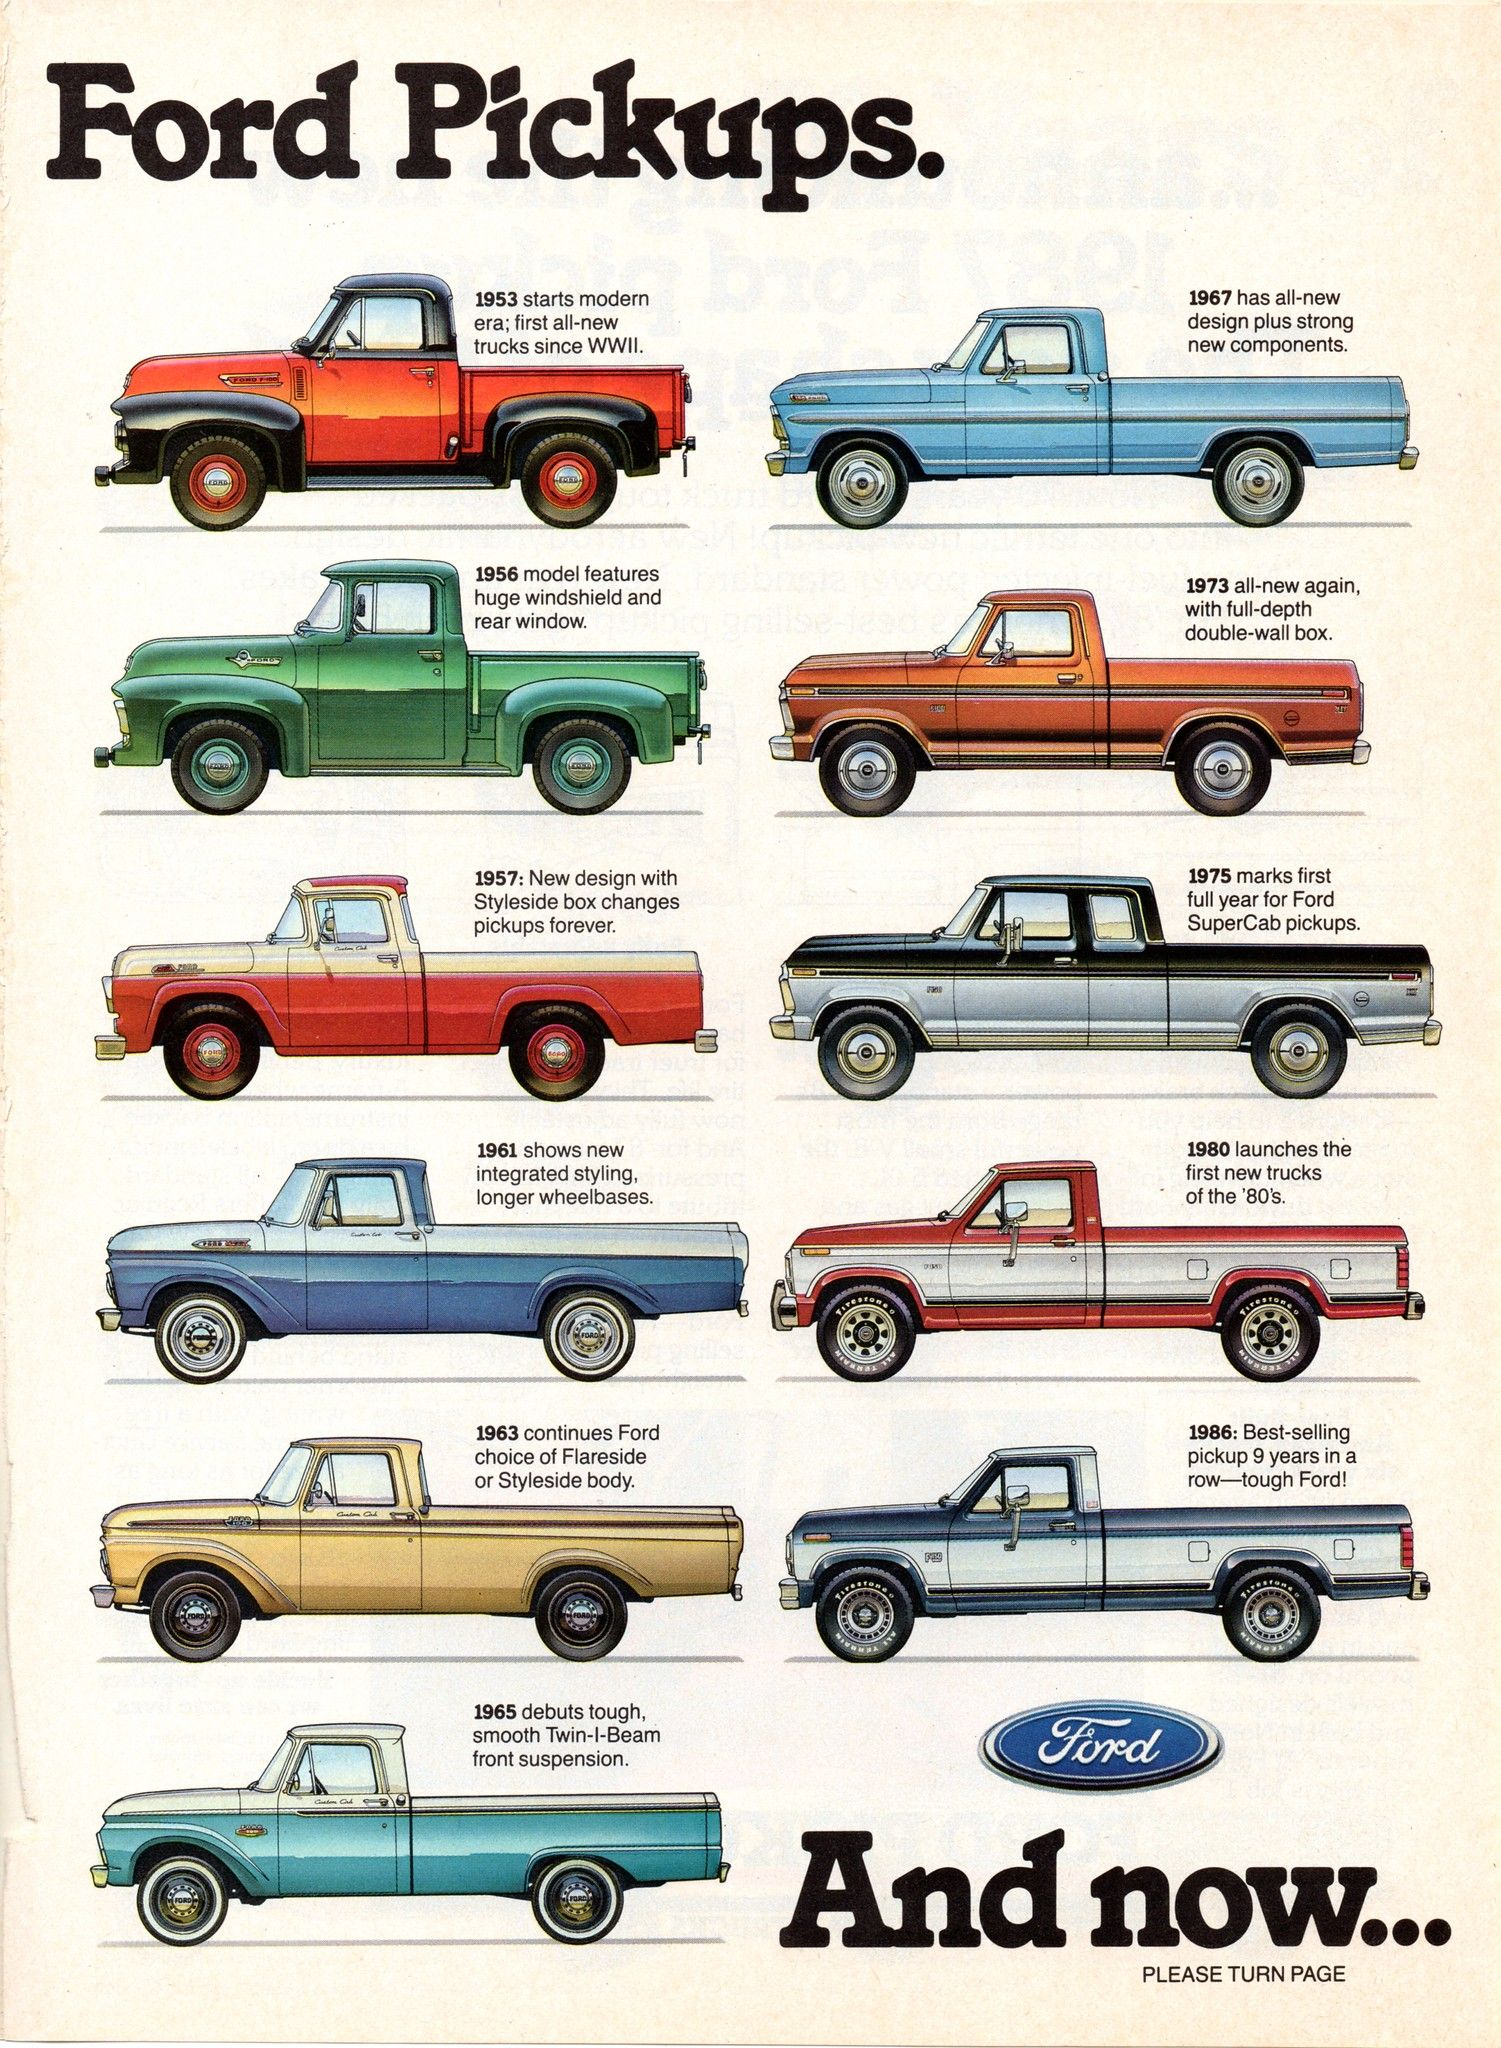 1987 Ford Truck Ad Pg 2 Ford Pickup Ford Trucks Ford Pickup Trucks